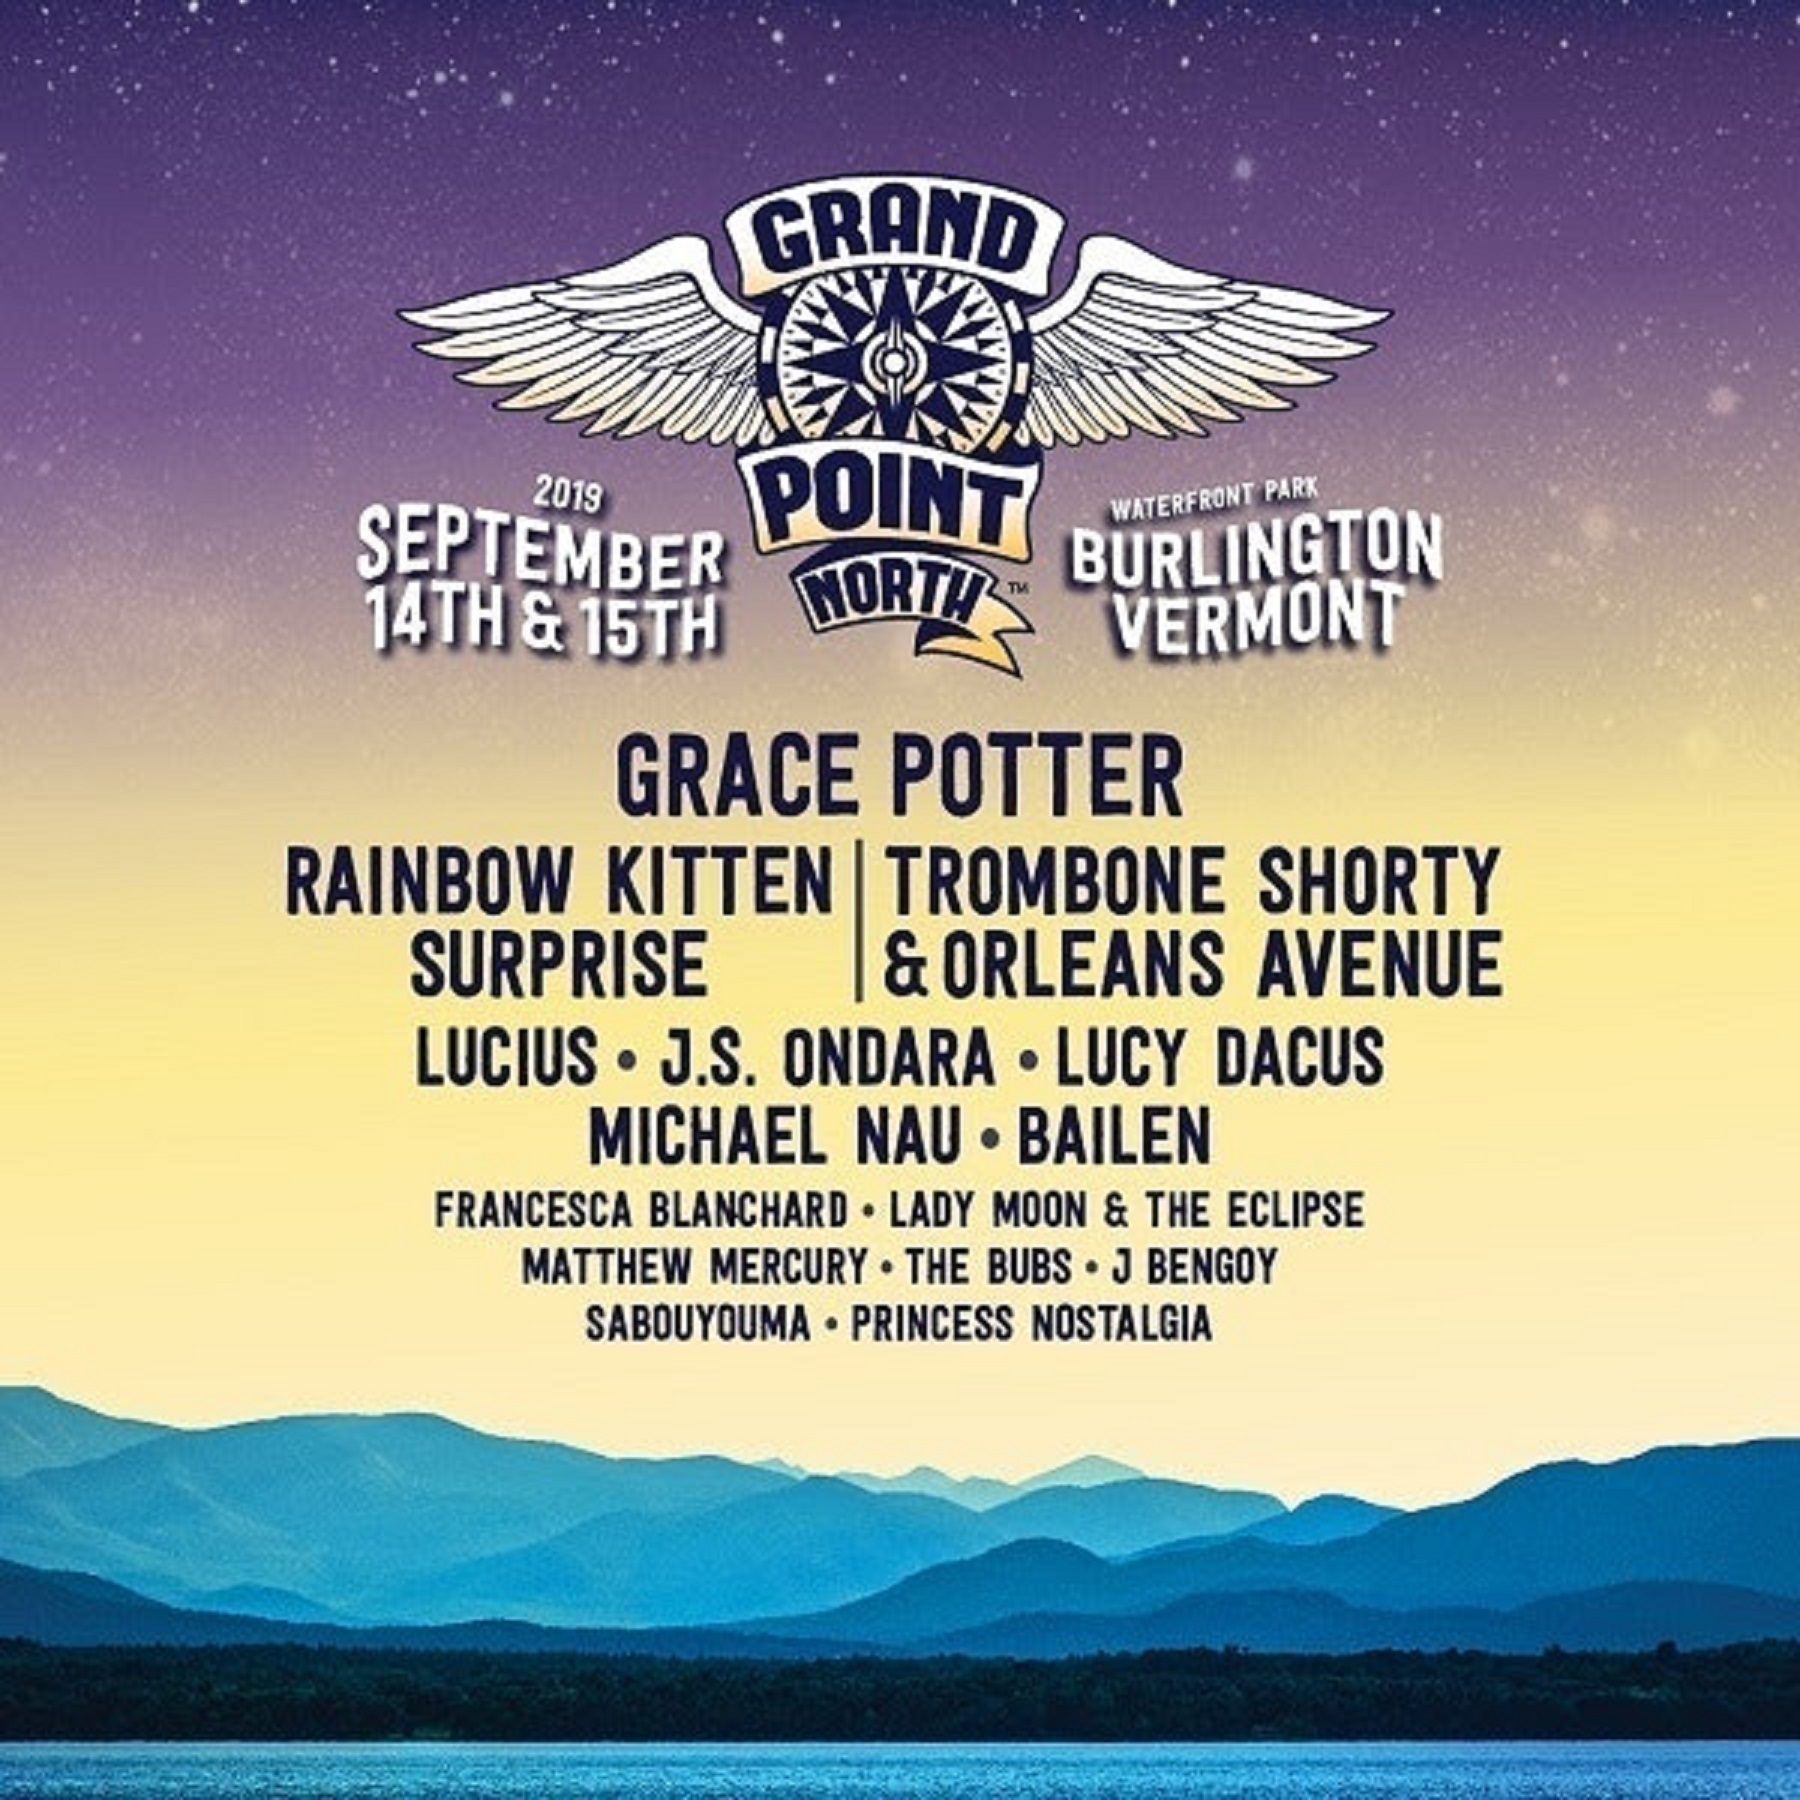 Grace Potter announces lineup for Ninth Annual Grand Point North Festival